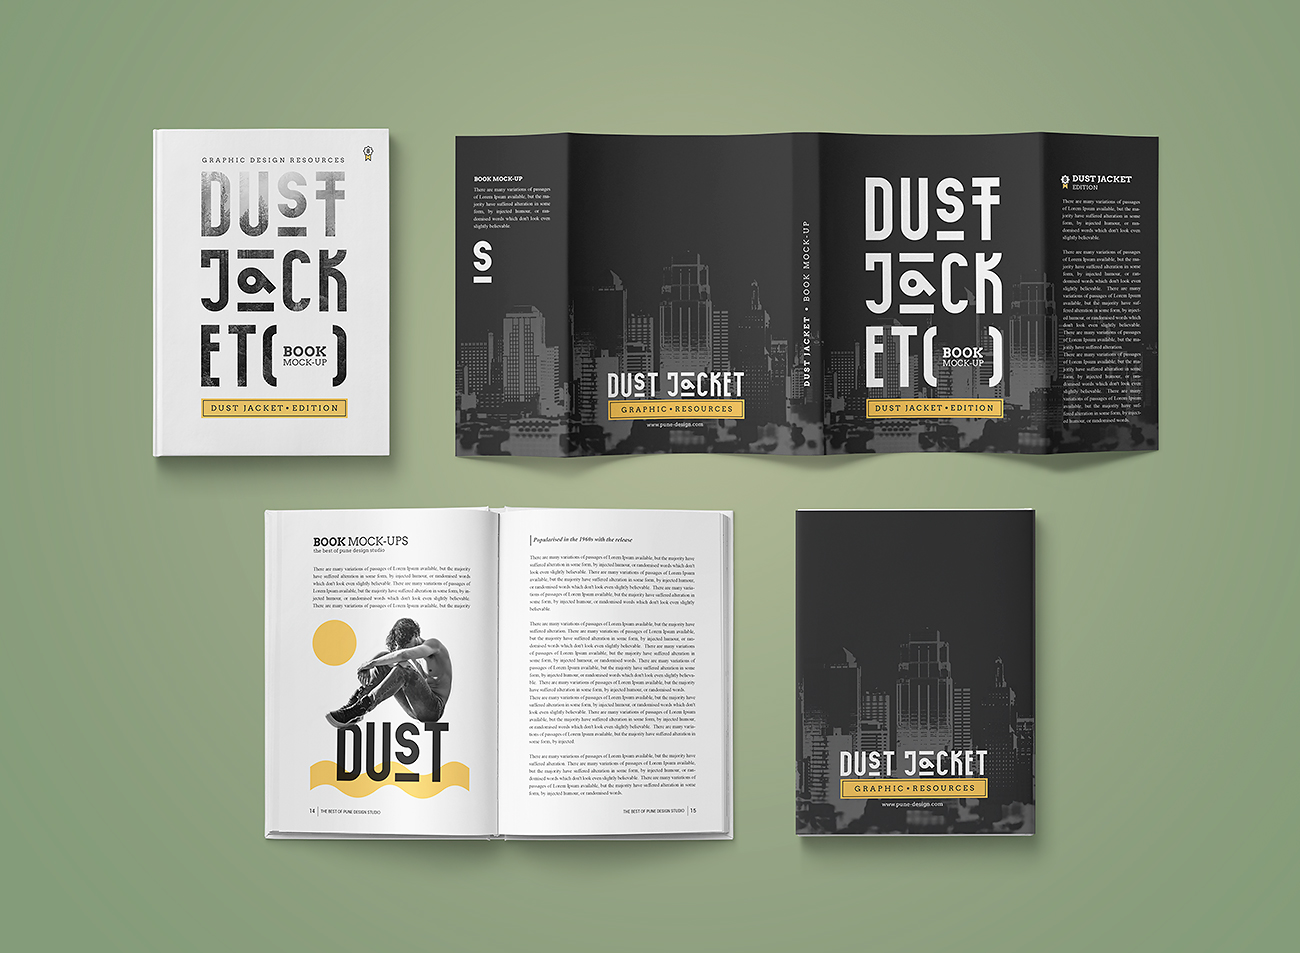 Book-mockup-dust-jacket-008